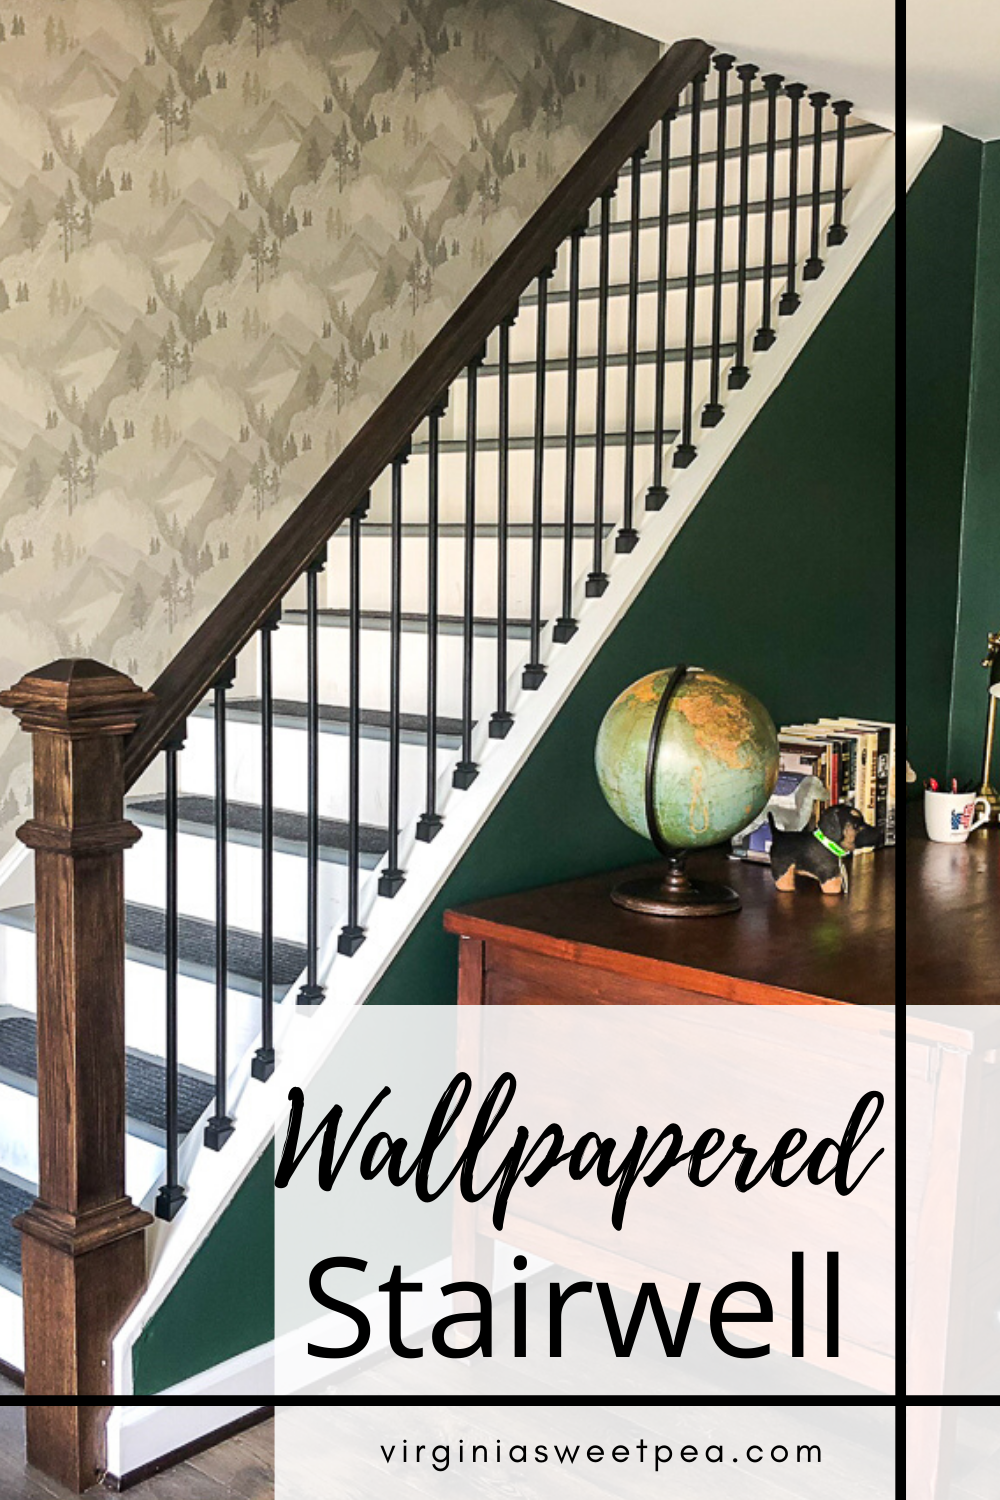 Wallpapered Stairwell - Reveal of a stairwell wallpapered with Brewster Wallpaper Range Light Grey Mountains. #wallpaper #wallpaperedstairwell #wallpaperproject #lakehouse #lakehousedecor #smithmountainlake #brewsterwallpaper via @spaula